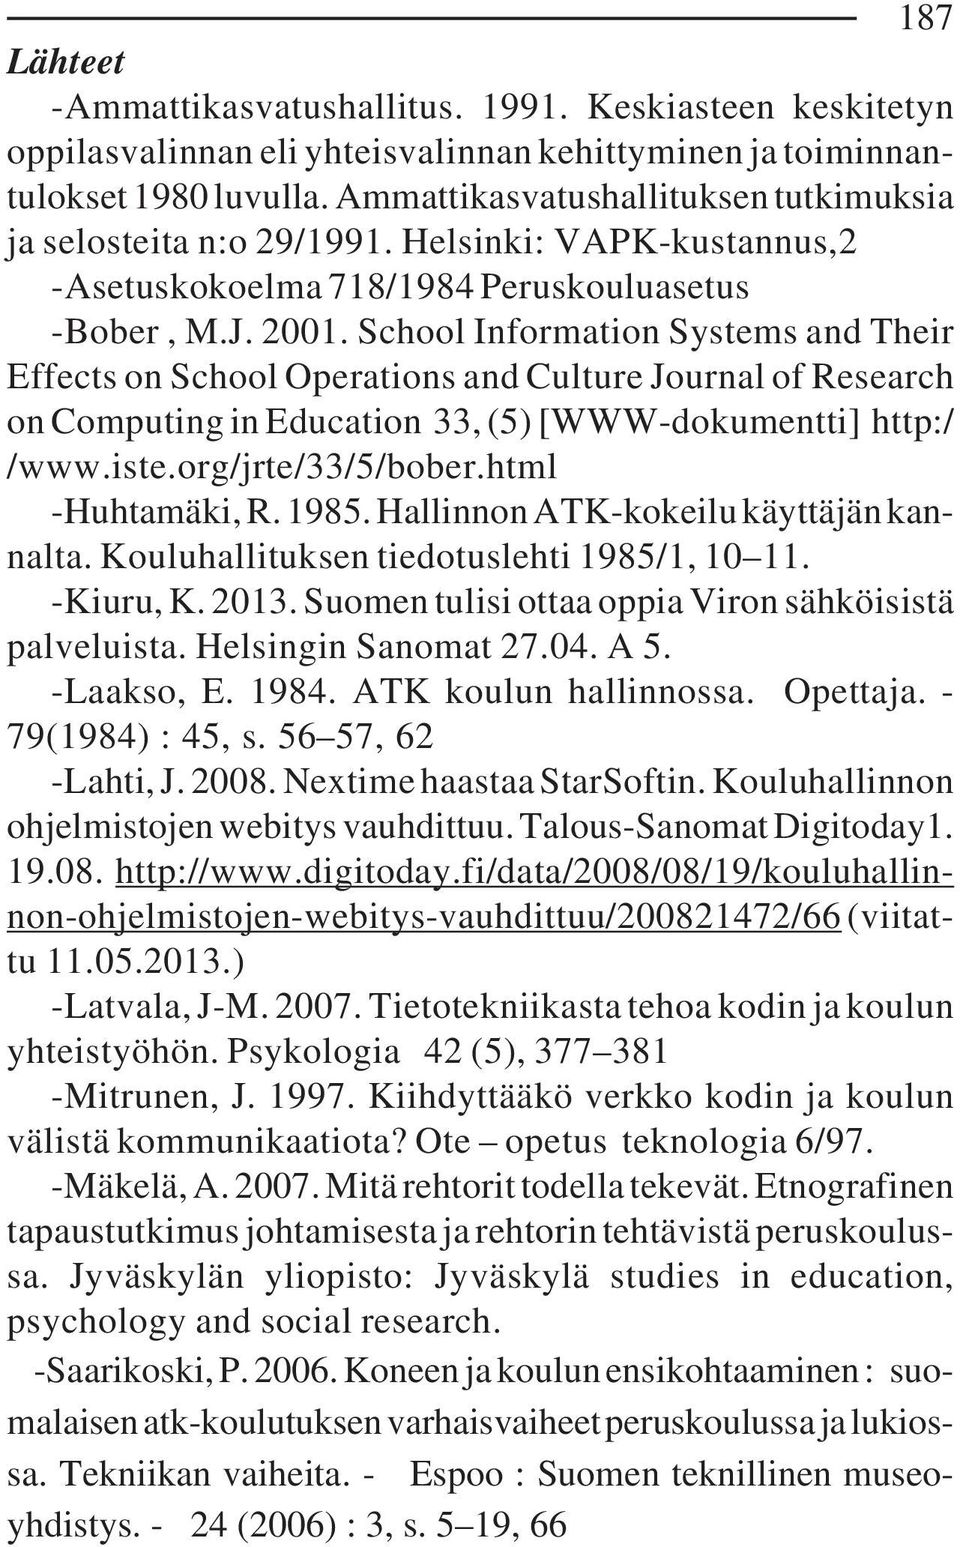 School Information Systems and Their Effects on School Operations and Culture Journal of Research on Computing in Education 33, (5) [WWW-dokumentti] http:/ /www.iste.org/jrte/33/5/bober.